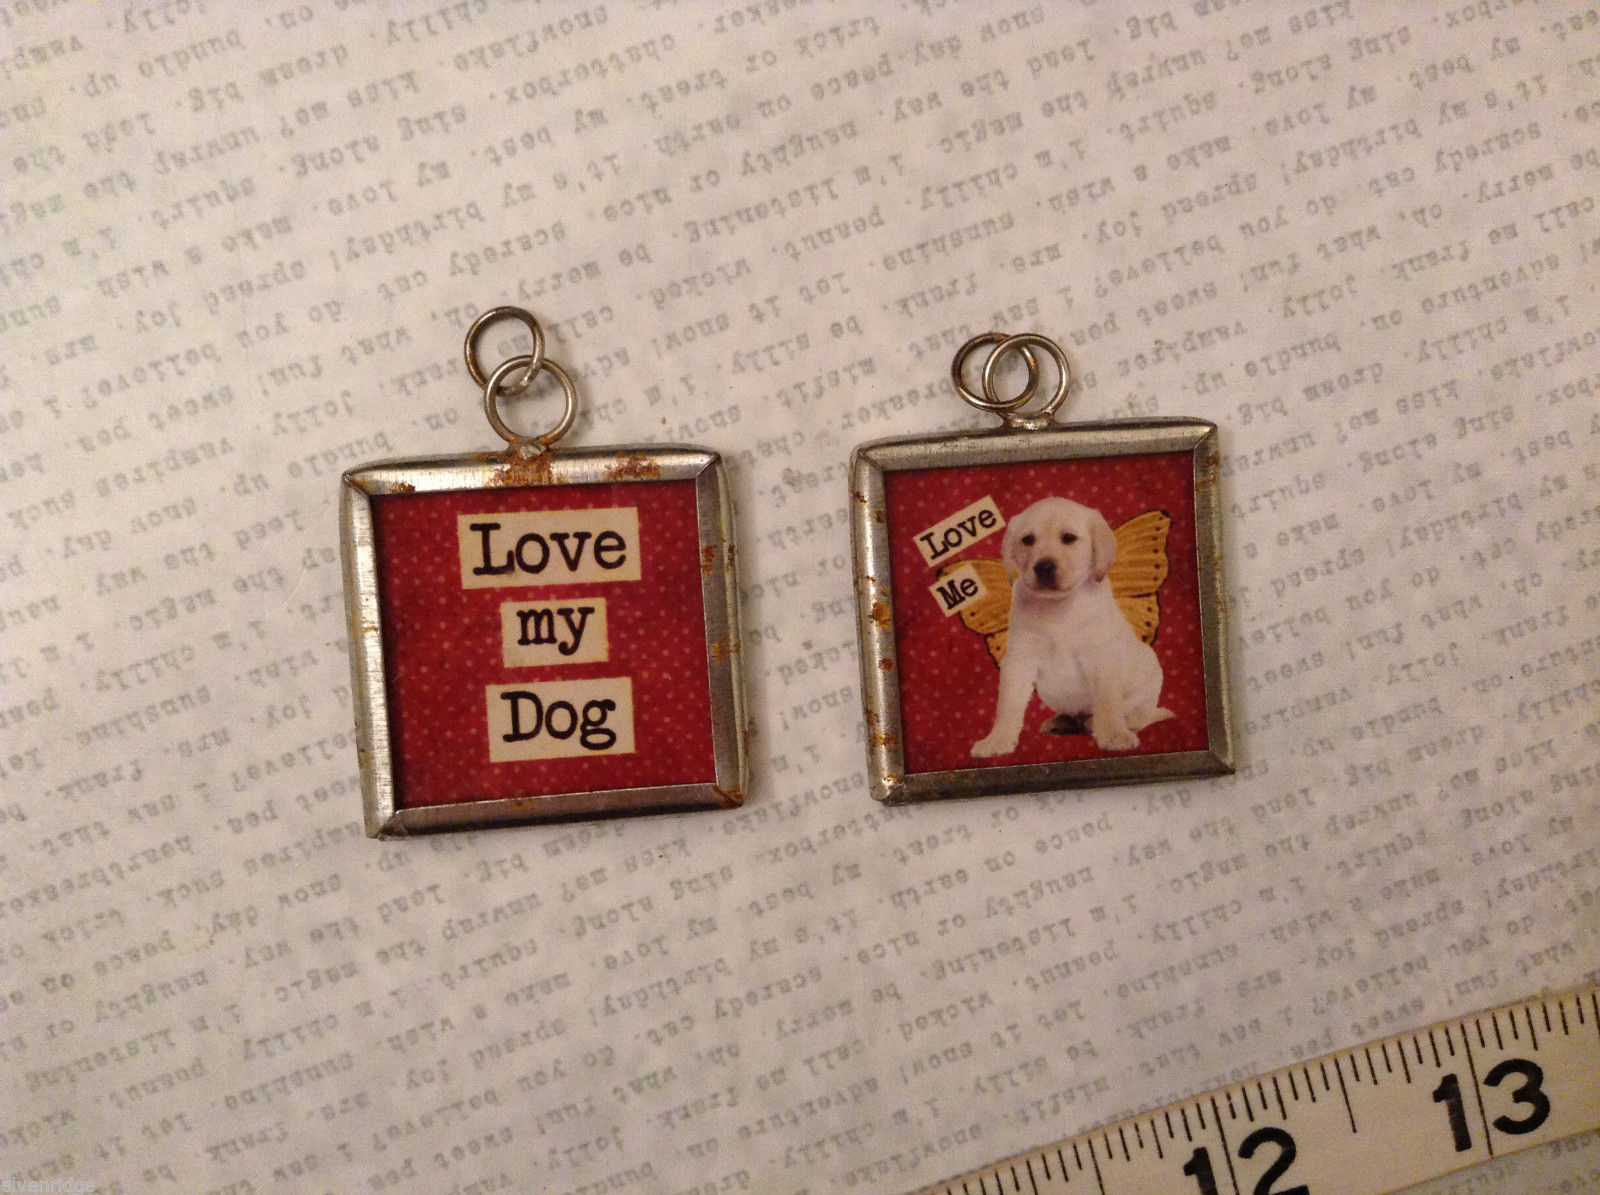 2 sided charm tag in metal frame vintage style - Love my dog / Love me - Puppy